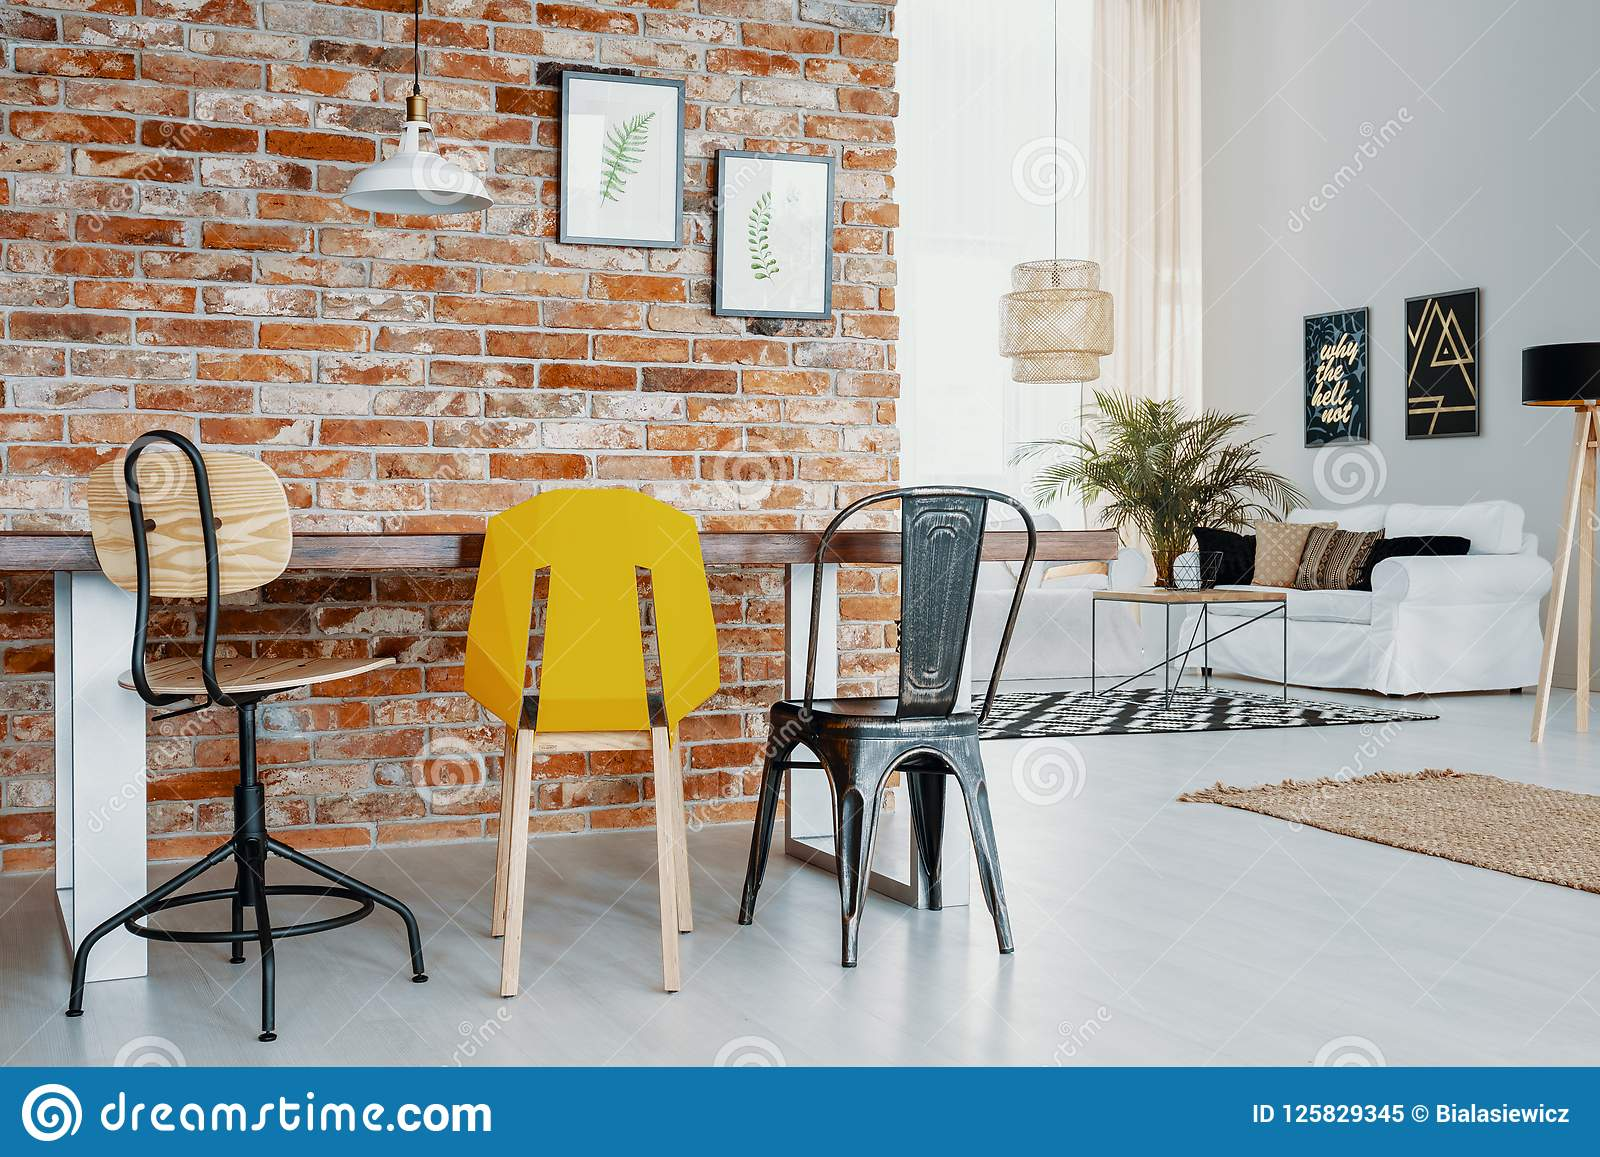 Red brick furniture Loft Chairs At Table Against Red Brick Wall With Posters In Modern Apartment Interior With Lamp Zebracolombiaco Chairs At Table Against Red Brick Wall With Posters In Modern